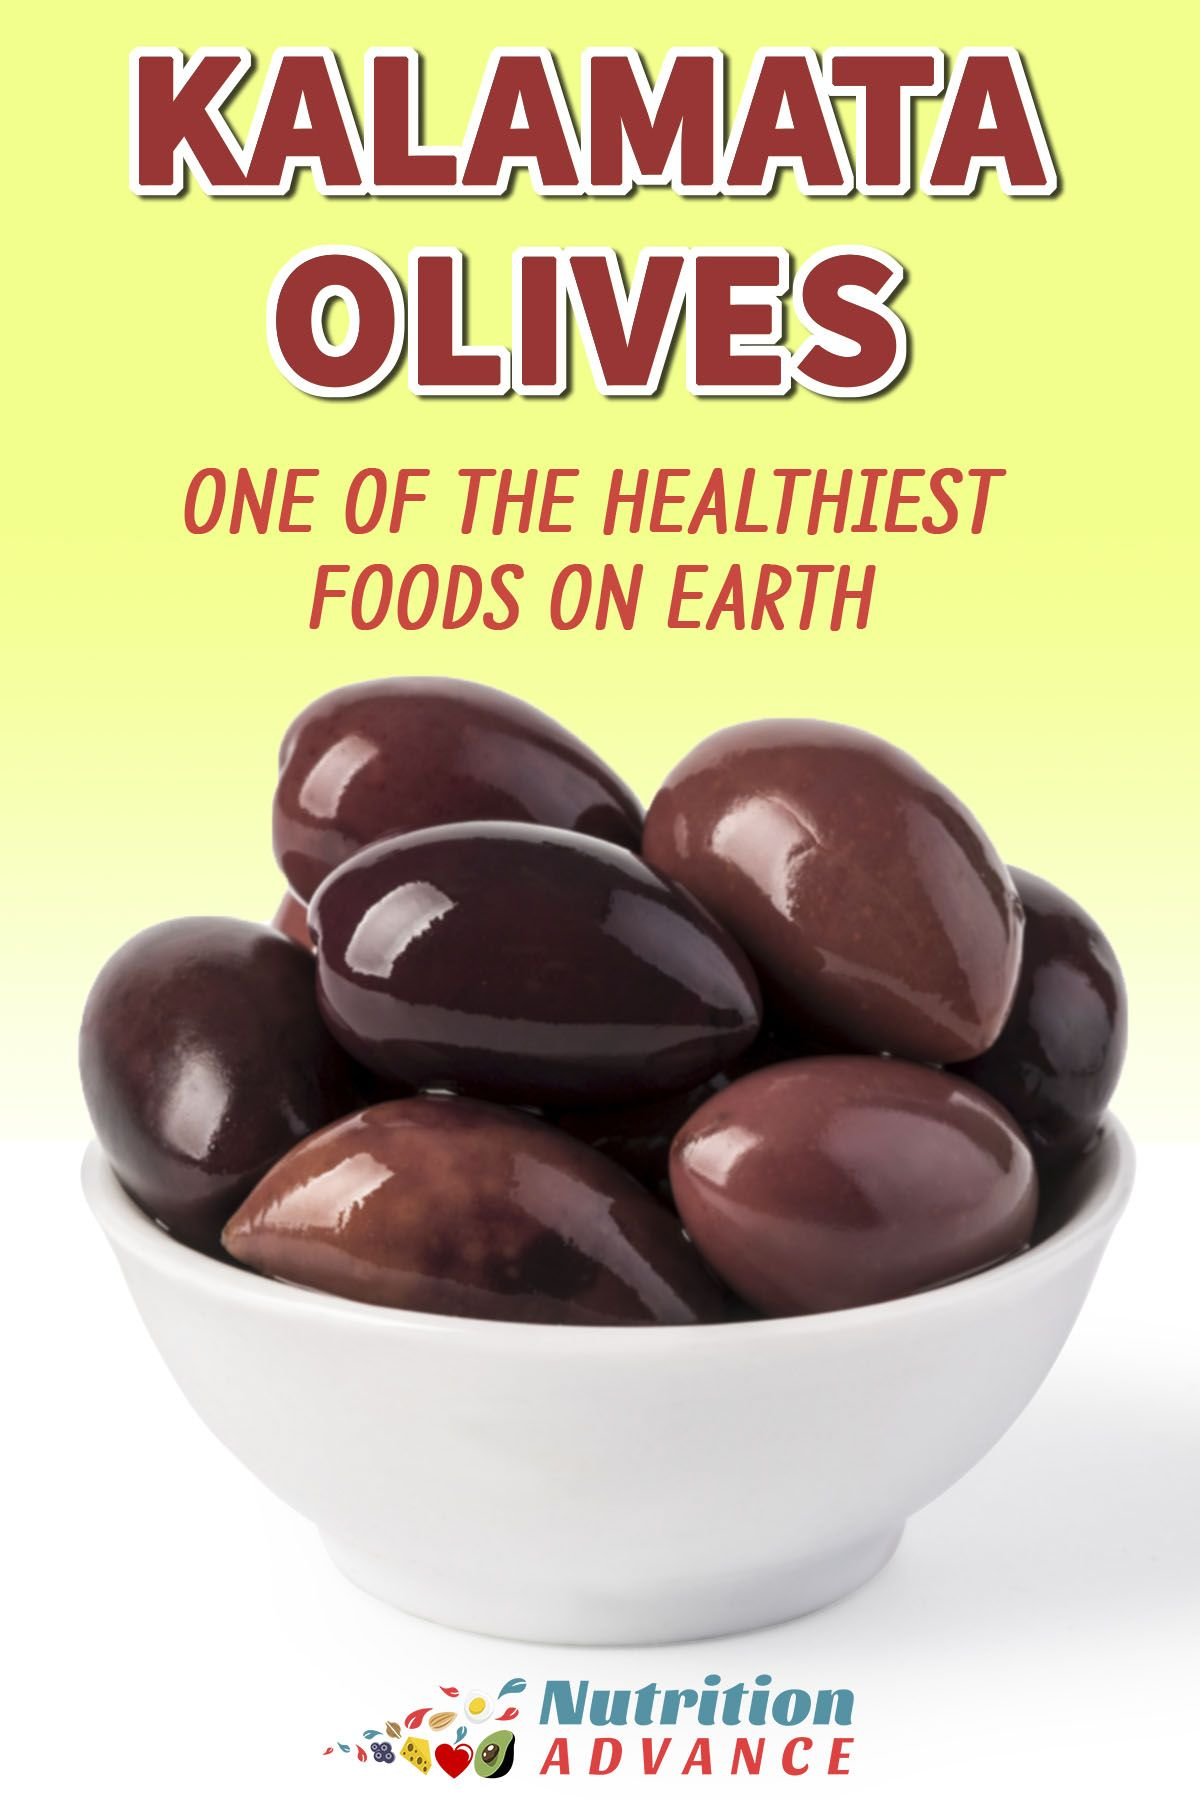 Kalamata Olives One Of The Healthiest Foods On Earth Low Carbohydrate Diet Food Healthy